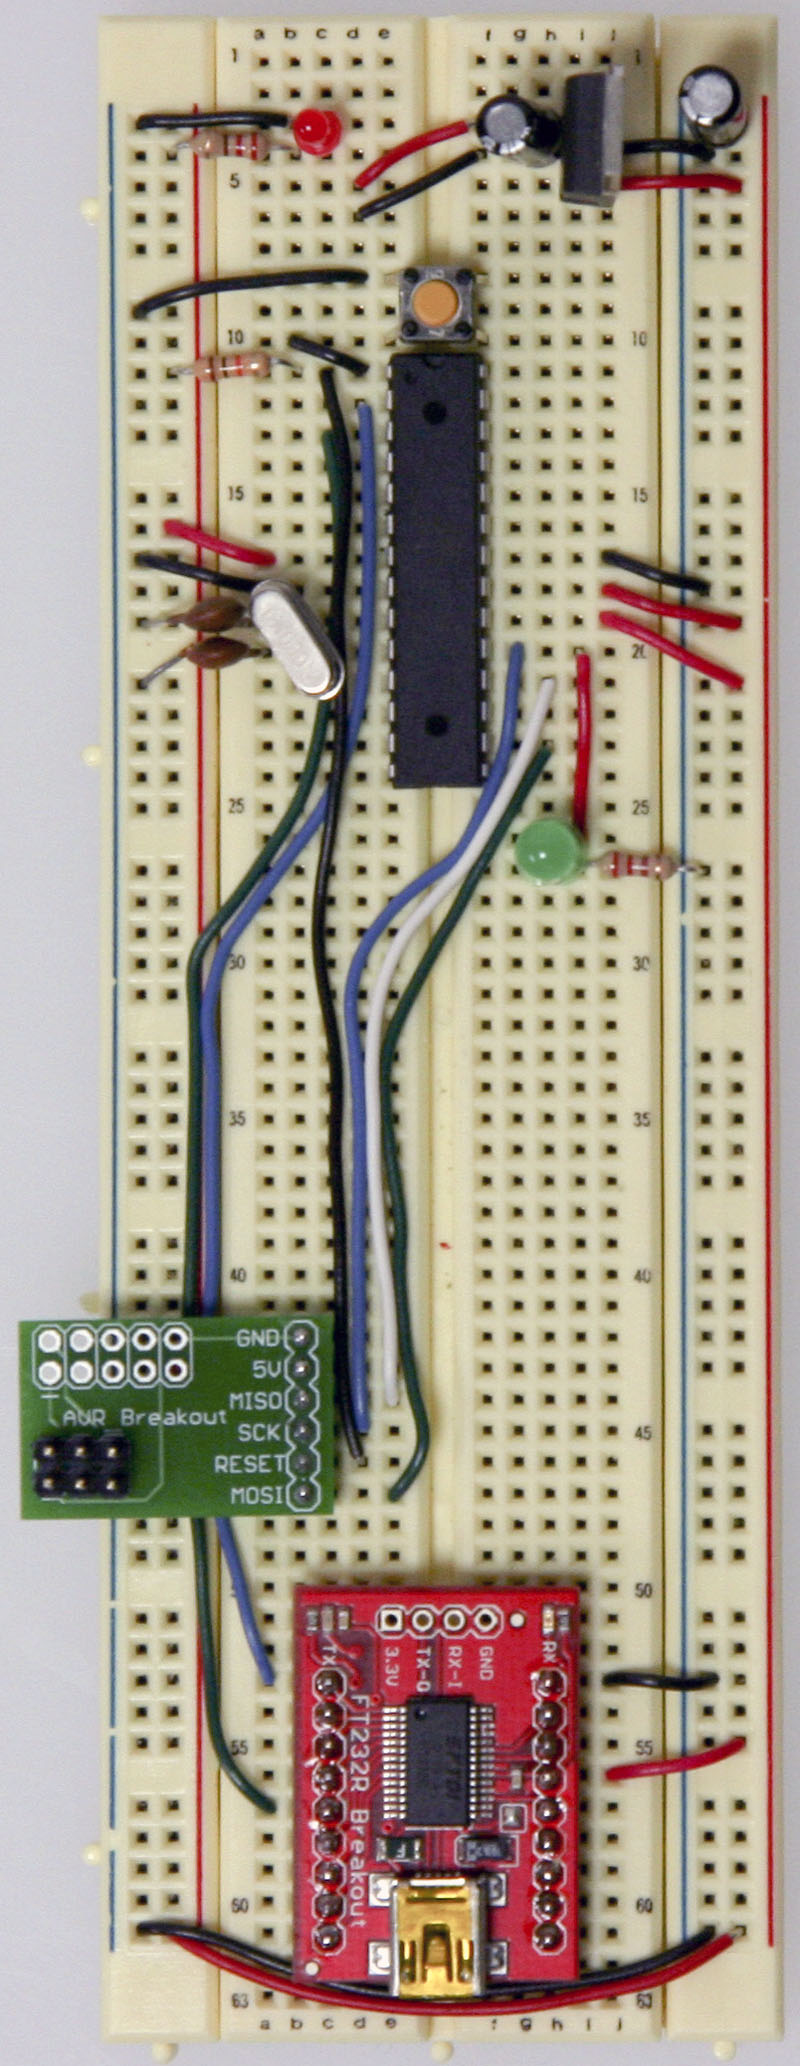 Arduino Setting Up An On A Breadboard Ide To Usb Wiring Schematics Avrwires